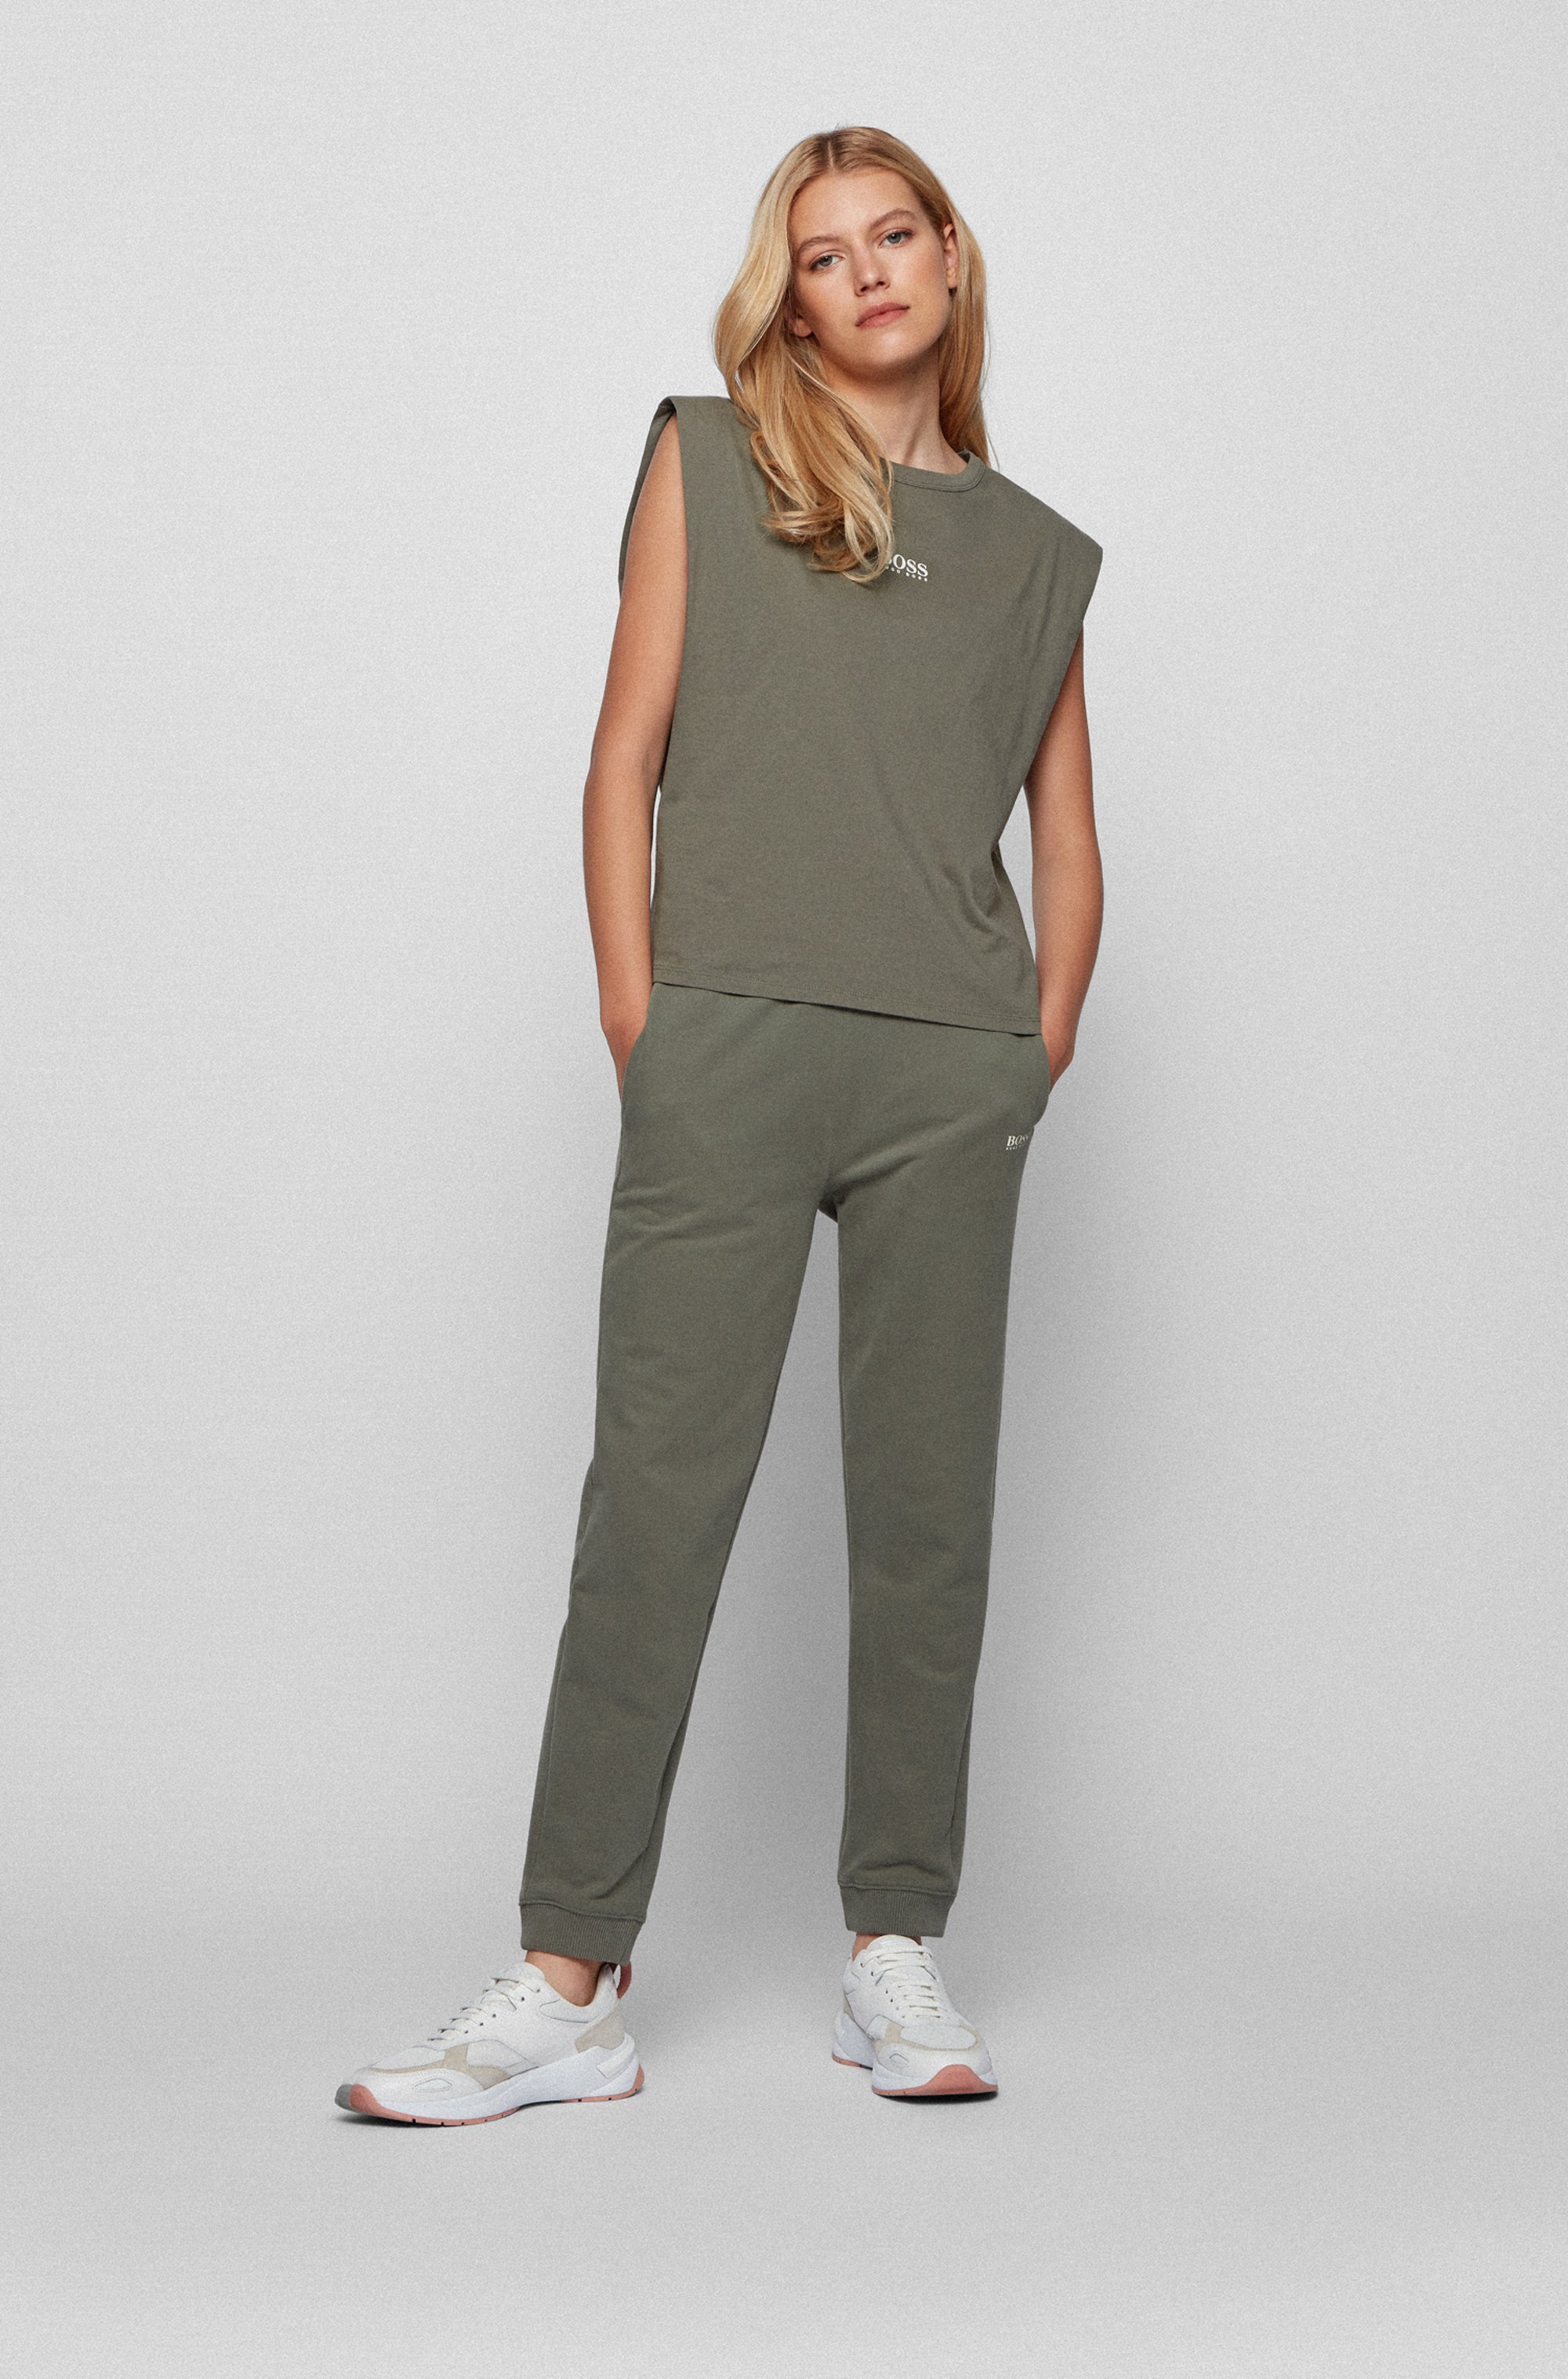 Relaxed-fit organic-cotton T-shirt with sleeveless styling